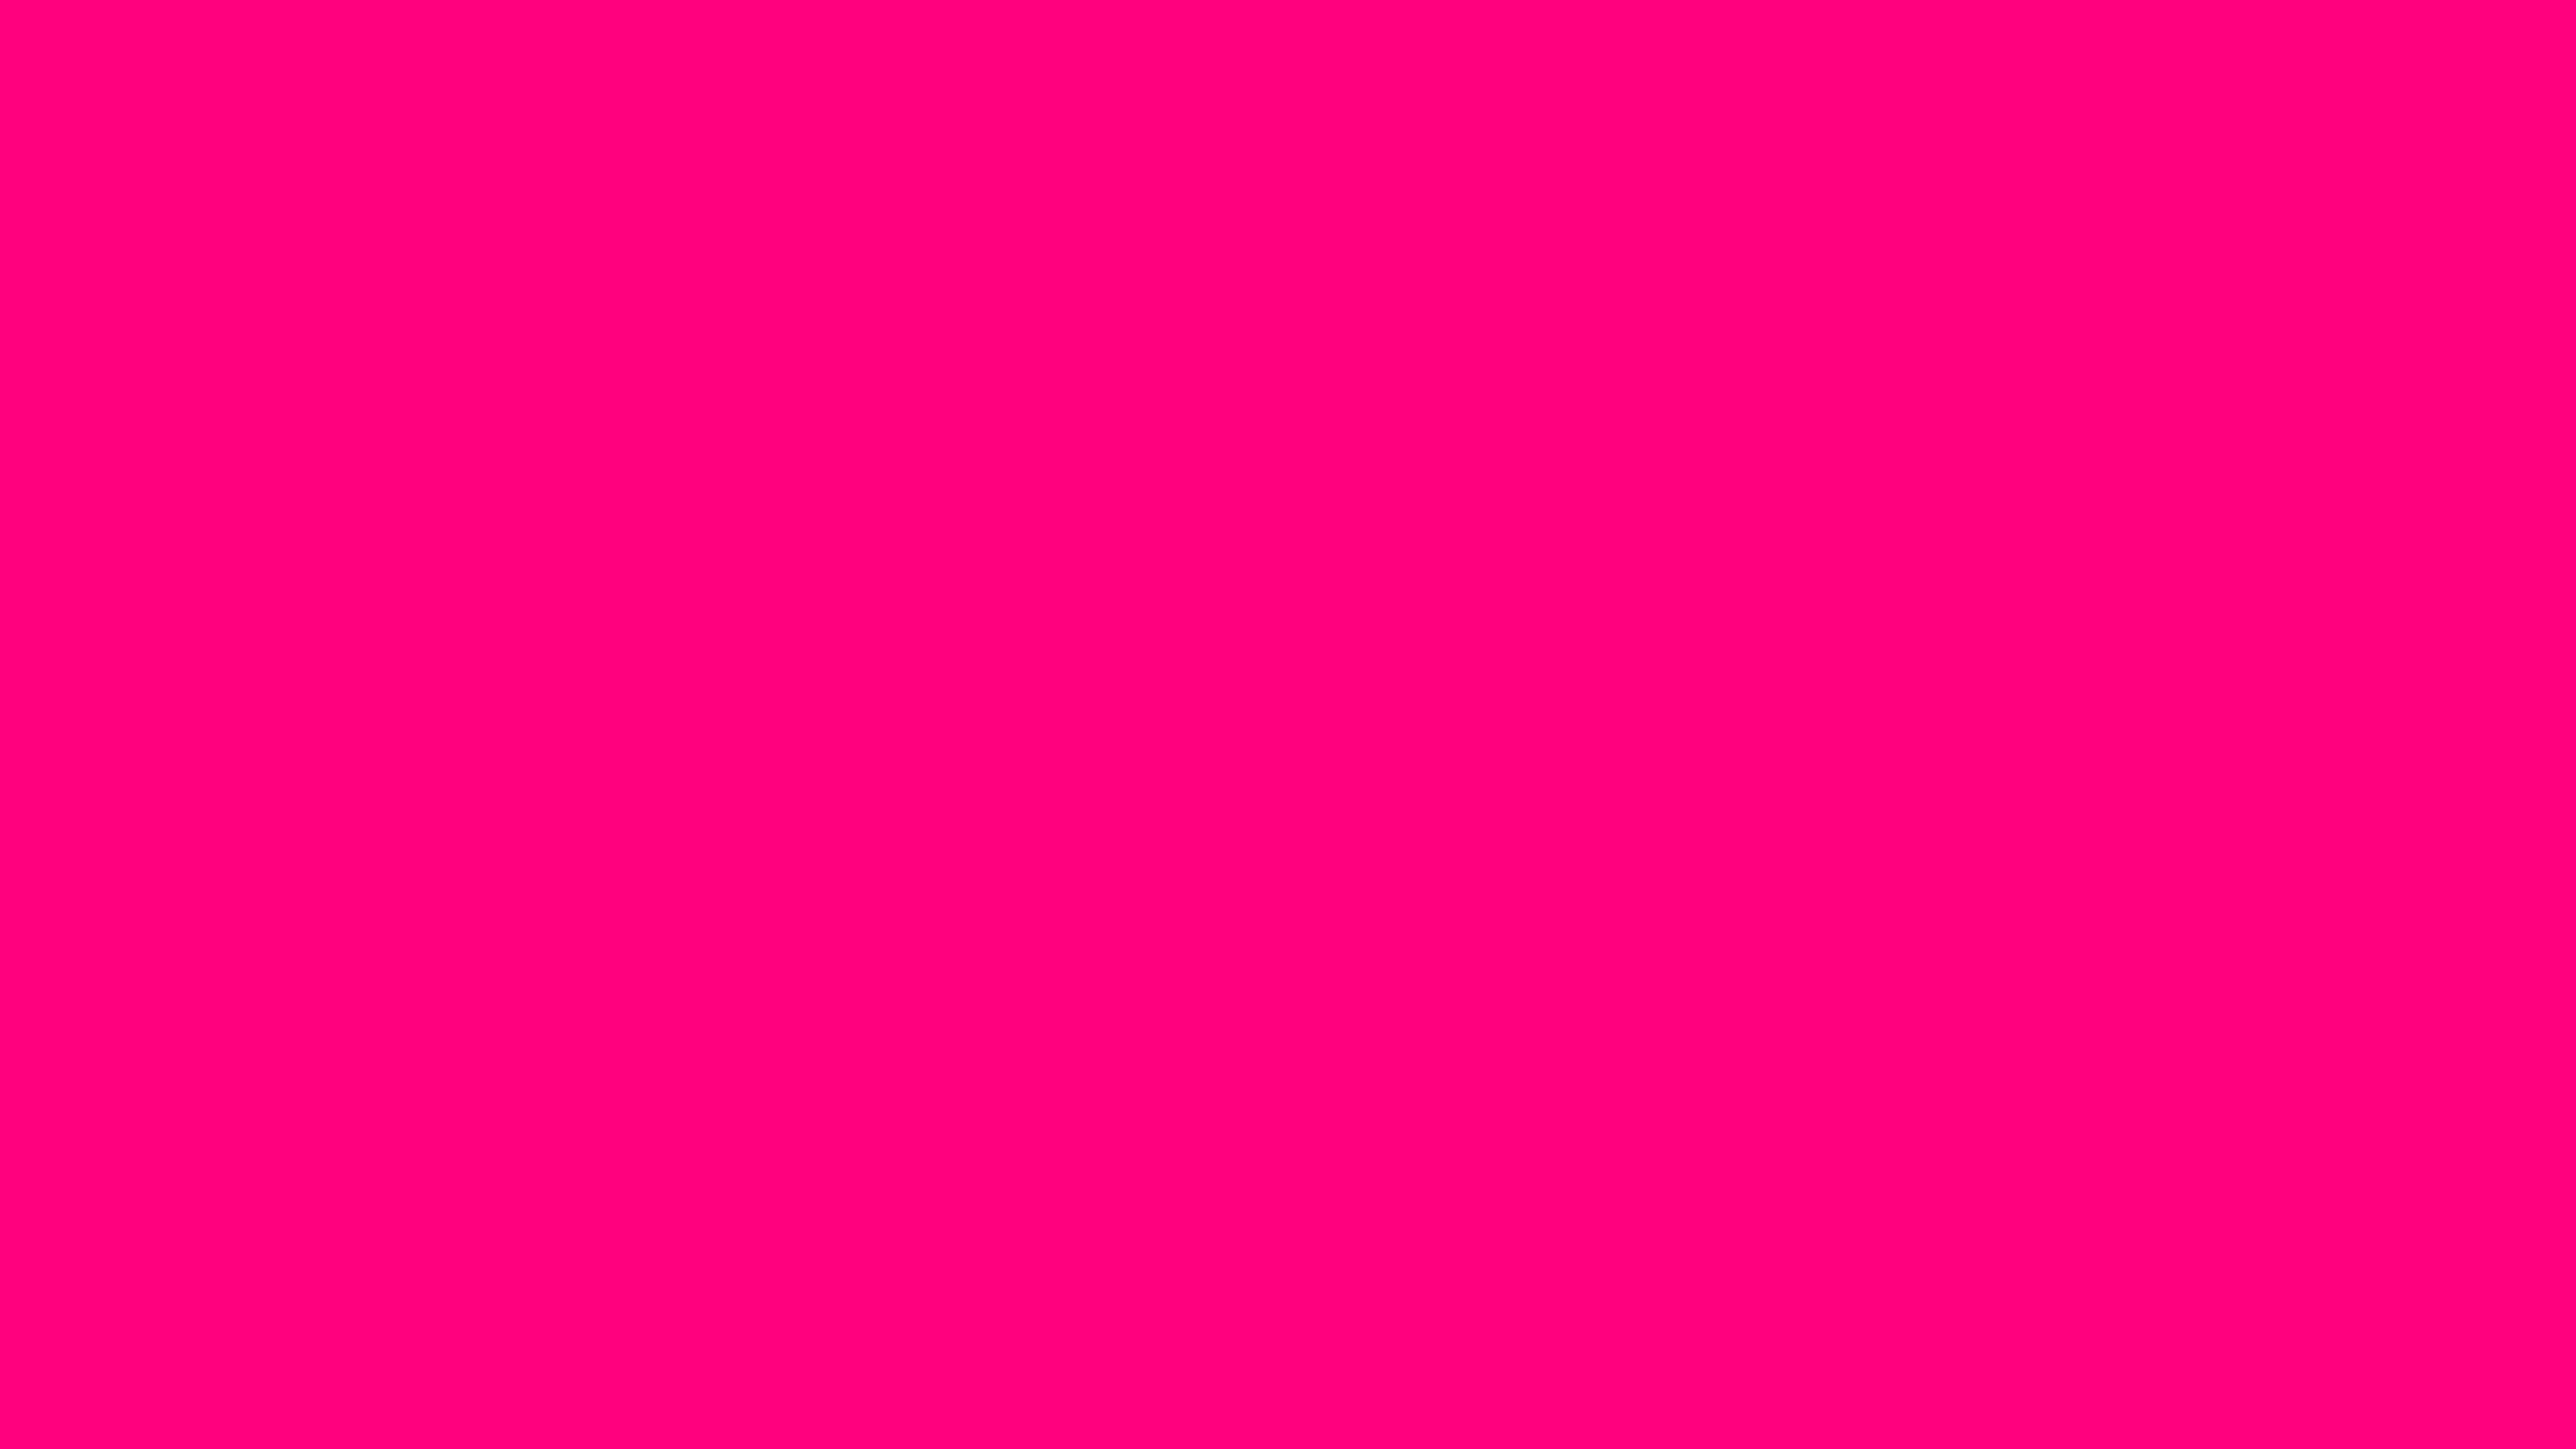 4096x2304 Bright Pink Solid Color Background